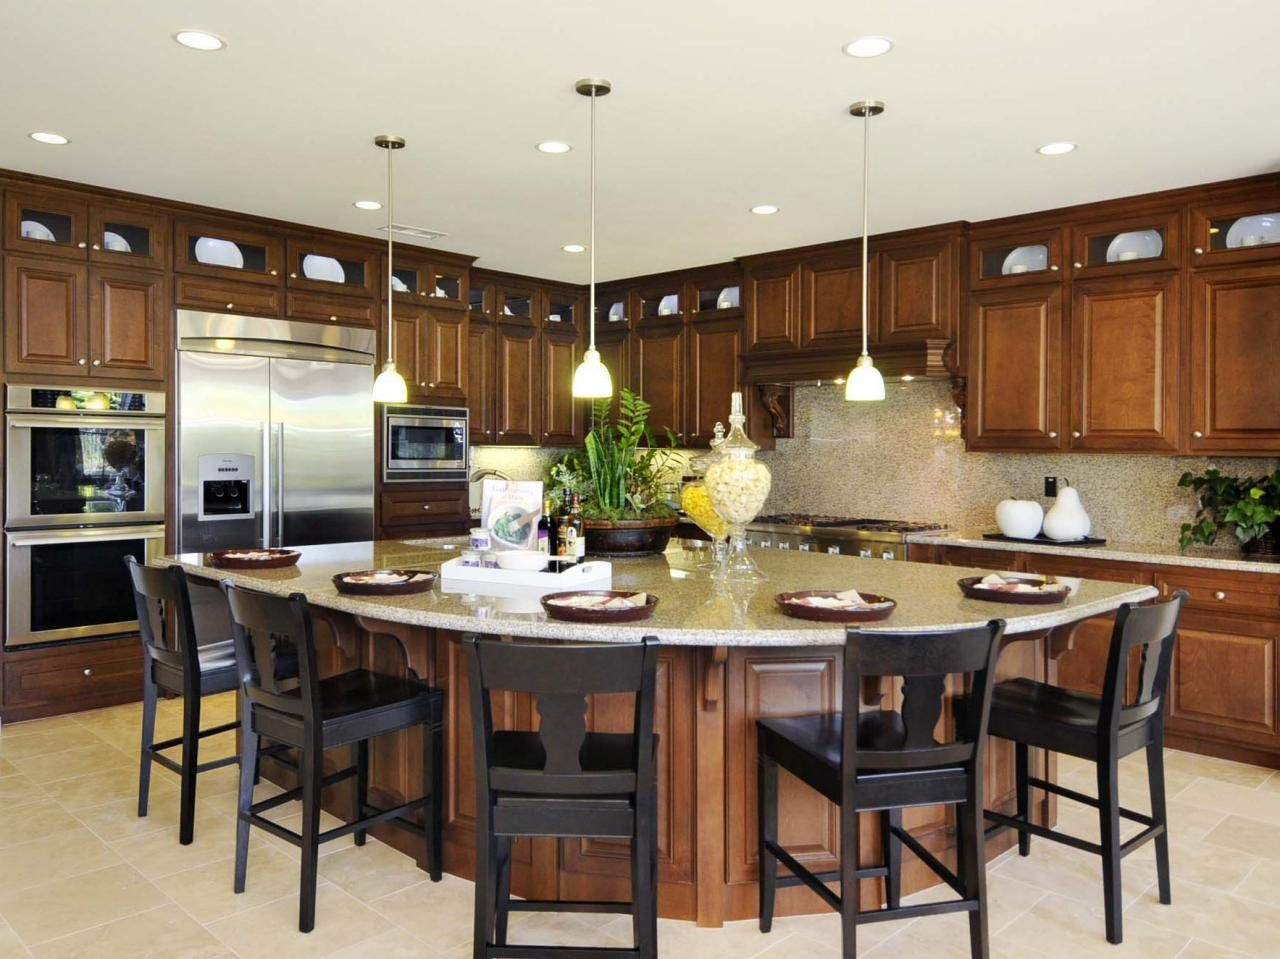 kitchen island design ideas pictures options tips kitchen layout kitchen island with on kitchen island ideas eat in id=82433